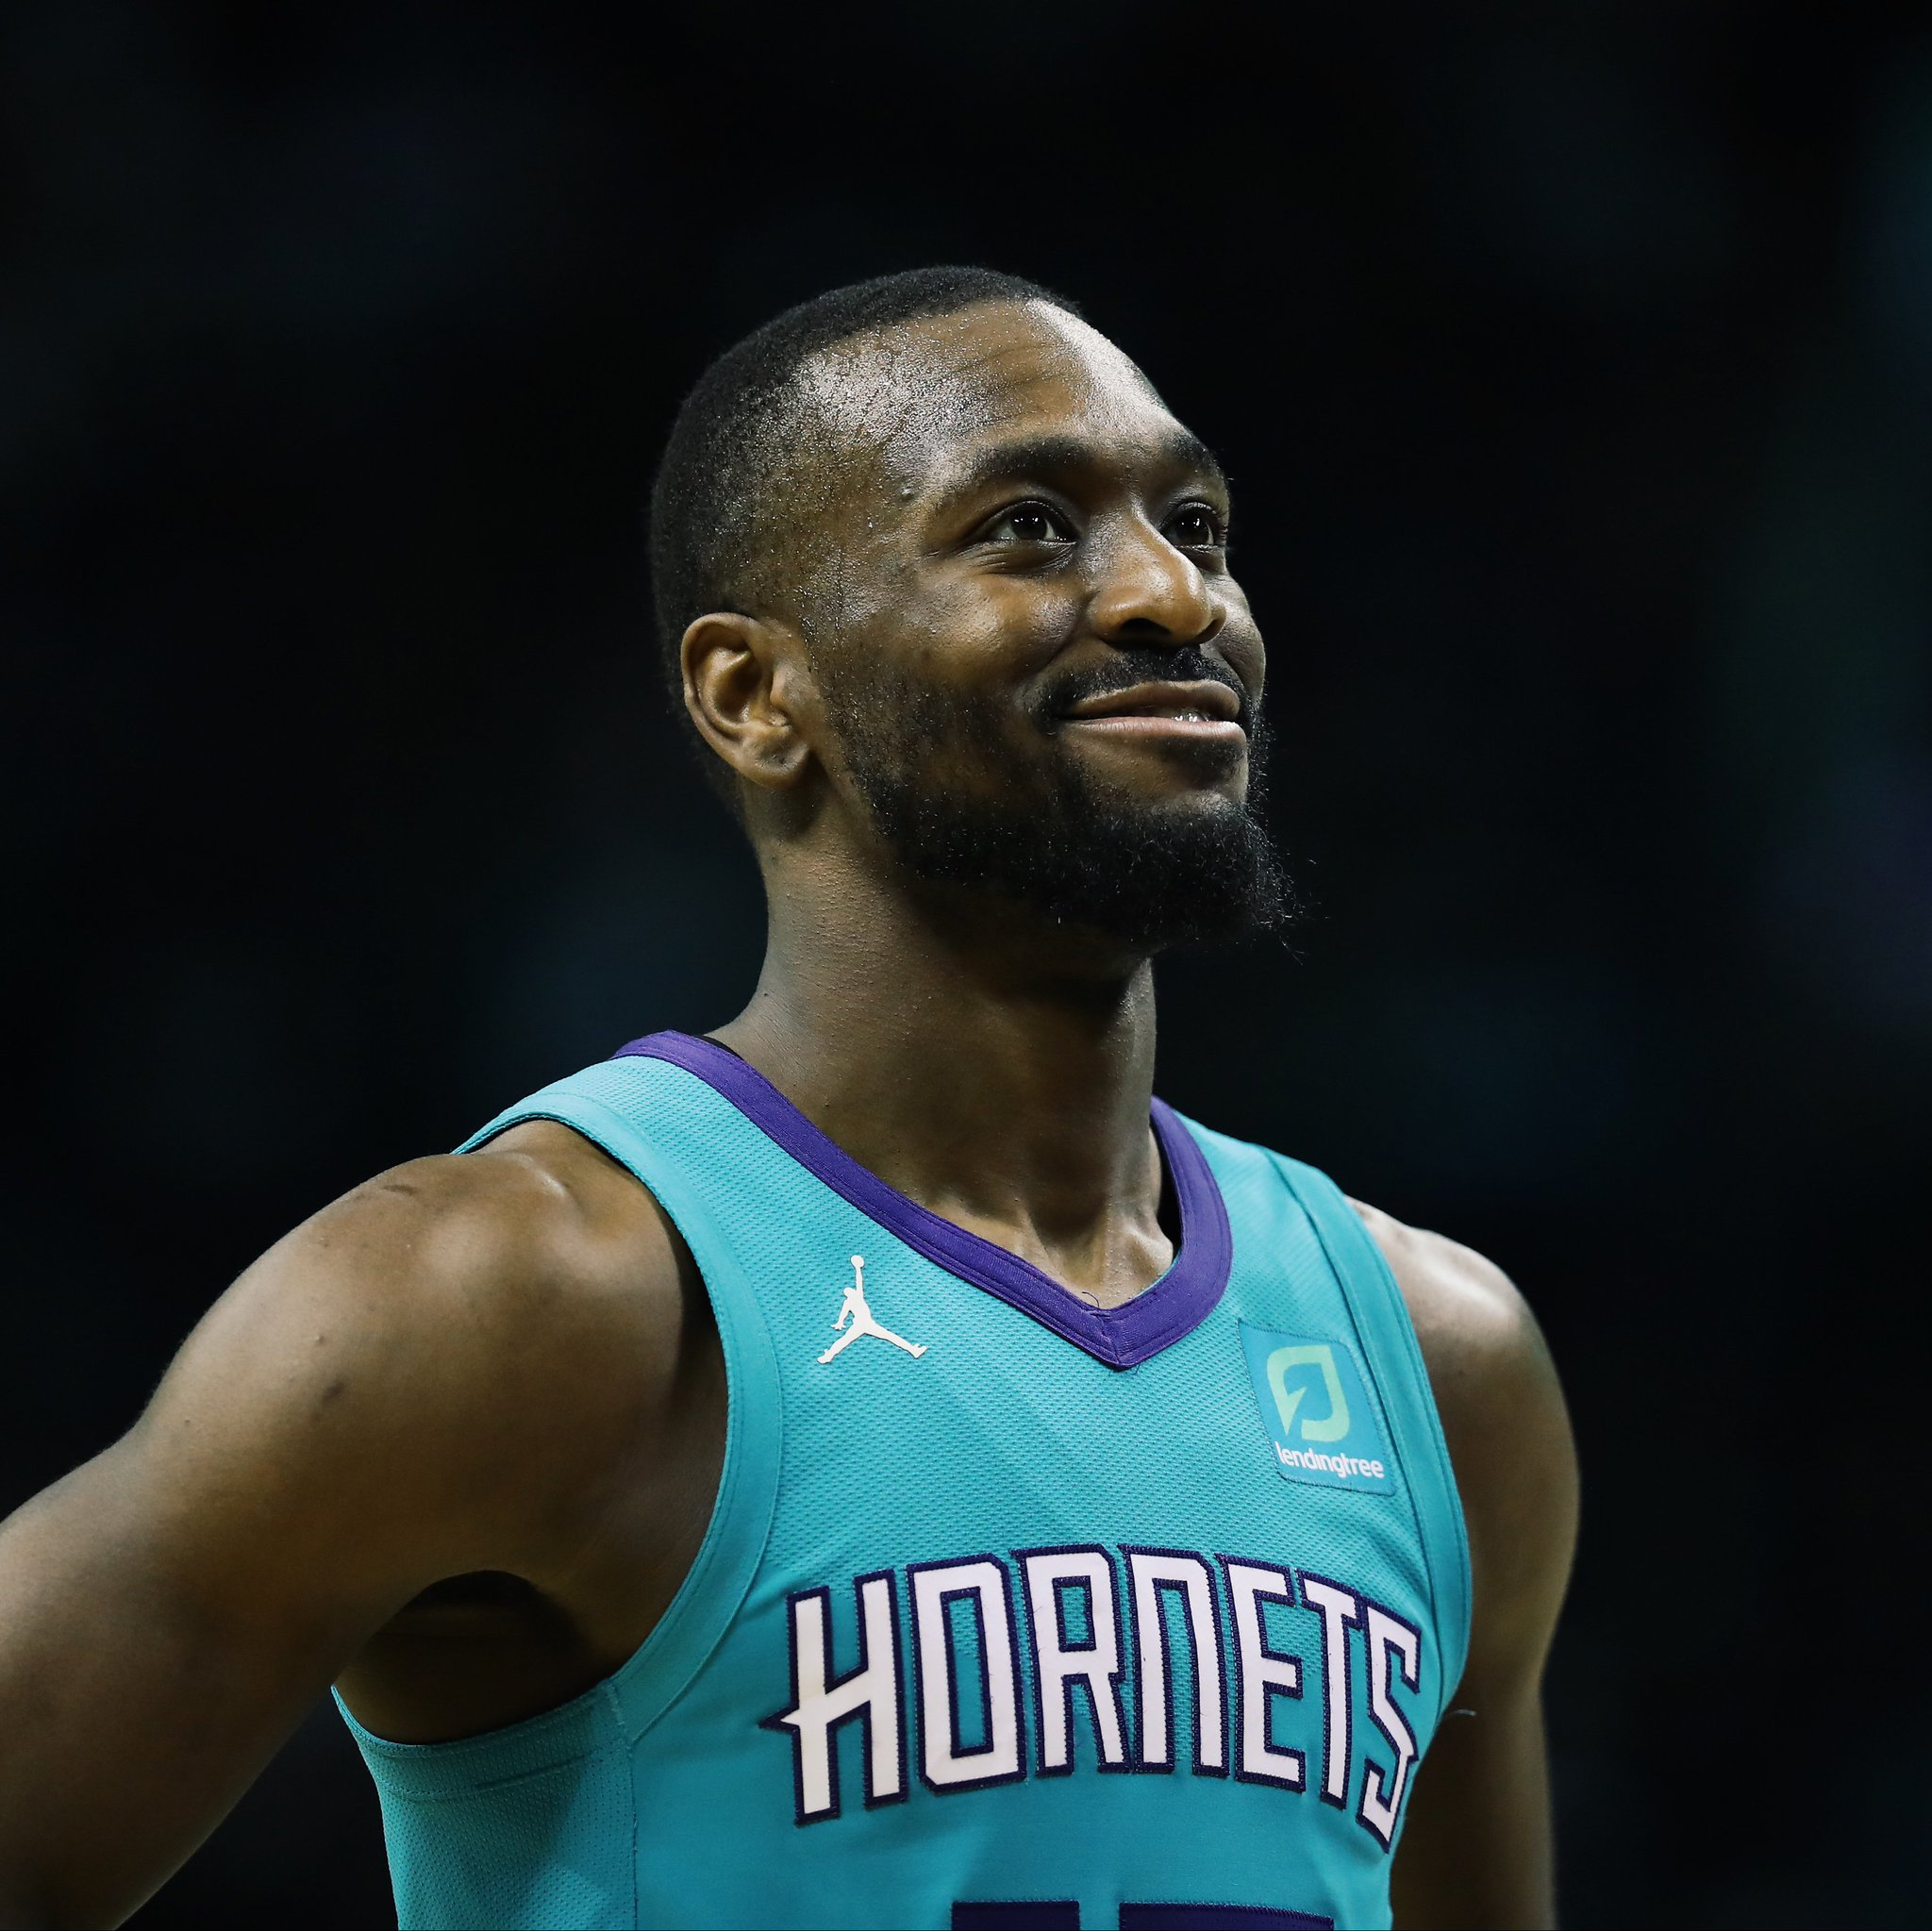 Kemba set himself up to get PAID 💰  By making All NBA Third Team, he officially qualifies for the supermax this summer ($221M, five years) https://t.co/Sh0Evz8YAv